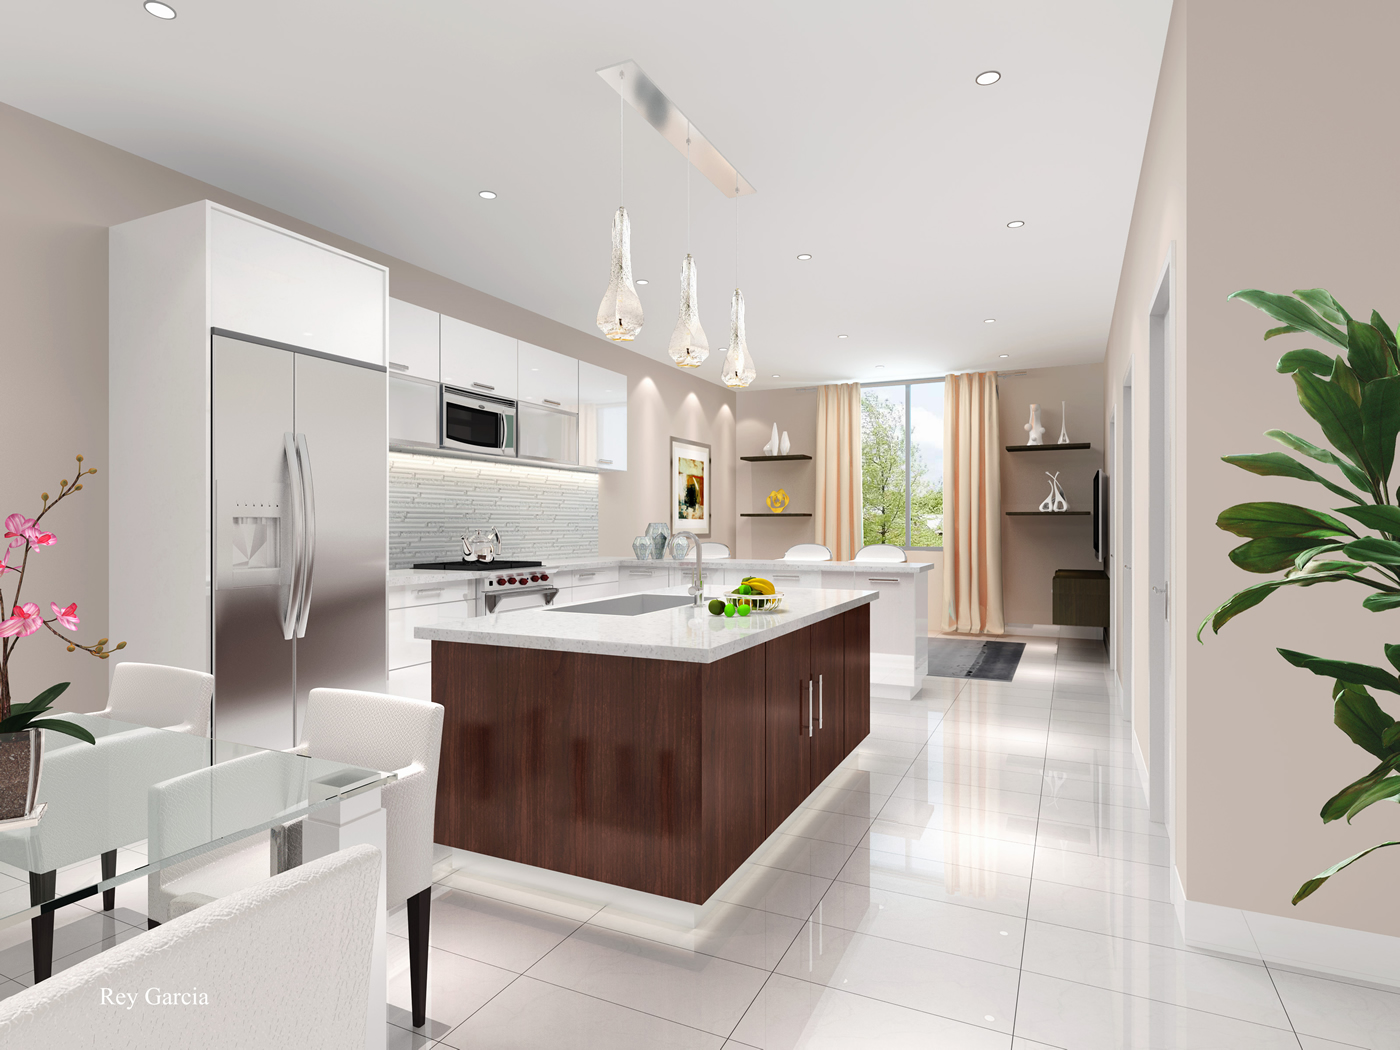 101 bay harbor new construction townhomes for sale in bay for Kitchen room model